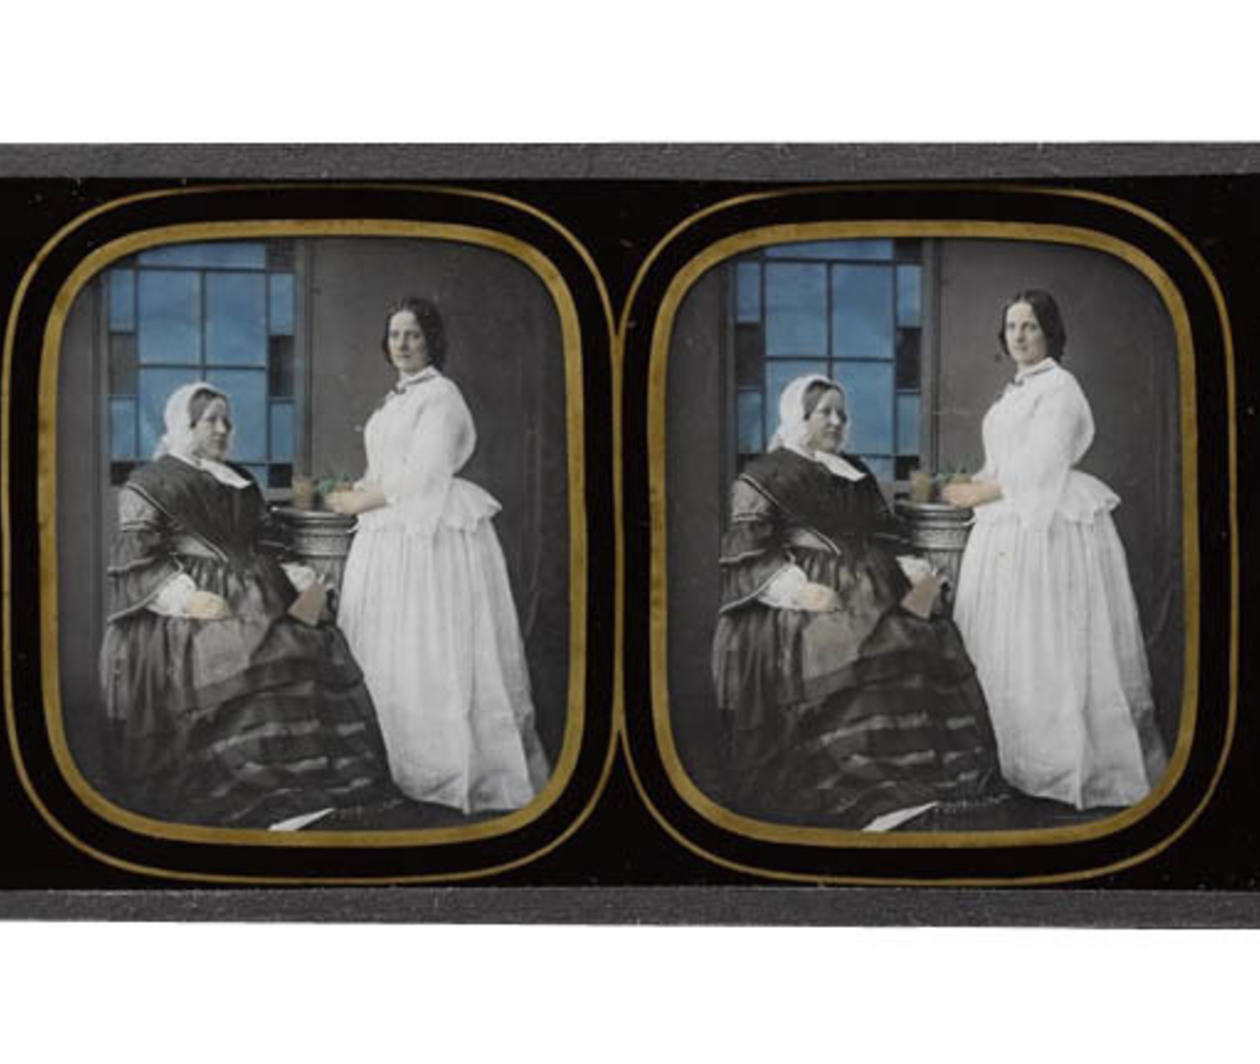 Stereoscopy: An Introduction to Victorian Stereo Photography